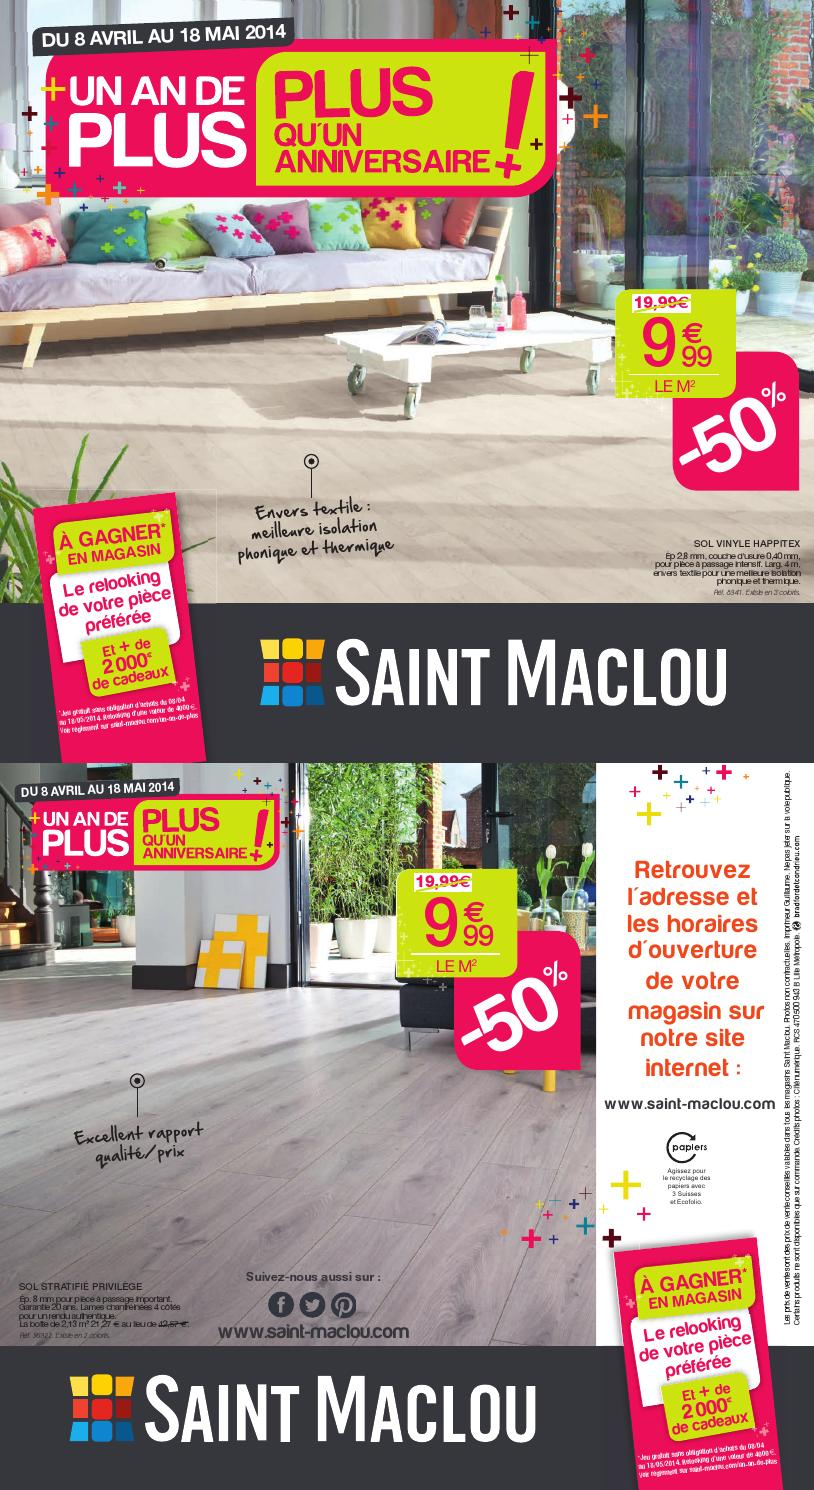 Dalles Clipsables Saint Maclou catalogue saint maclou - 8.04-18.05.2014joe monroe - issuu